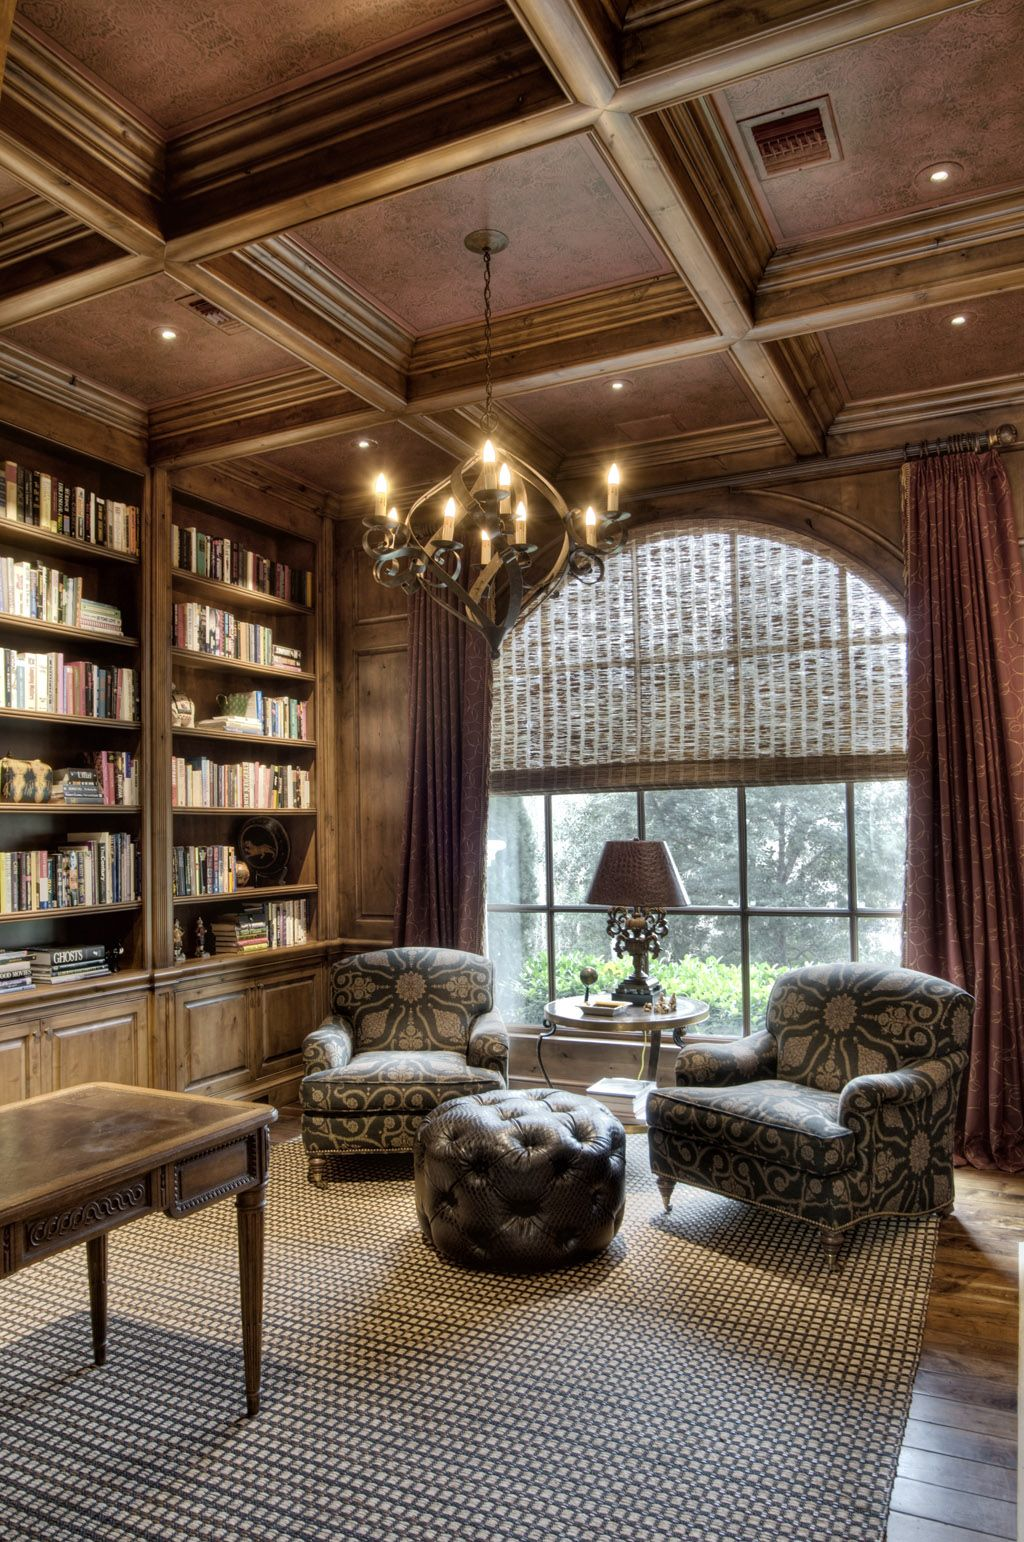 Living Room Library Design Ideas: Segreto Secrets Blog